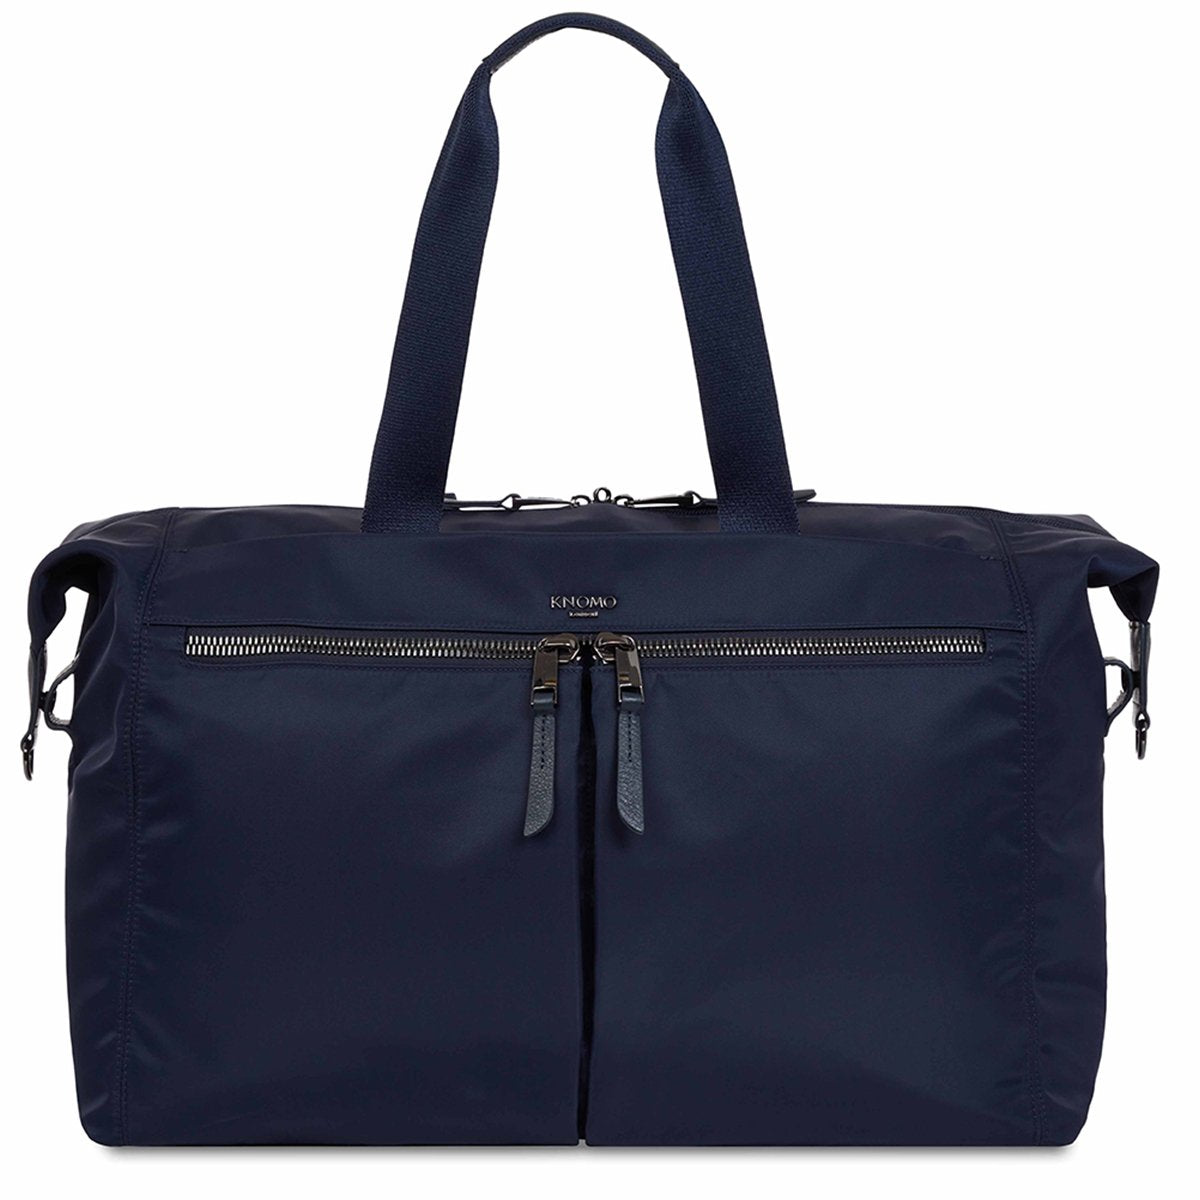 "Stratton Duffle bag 15"" -  15""  